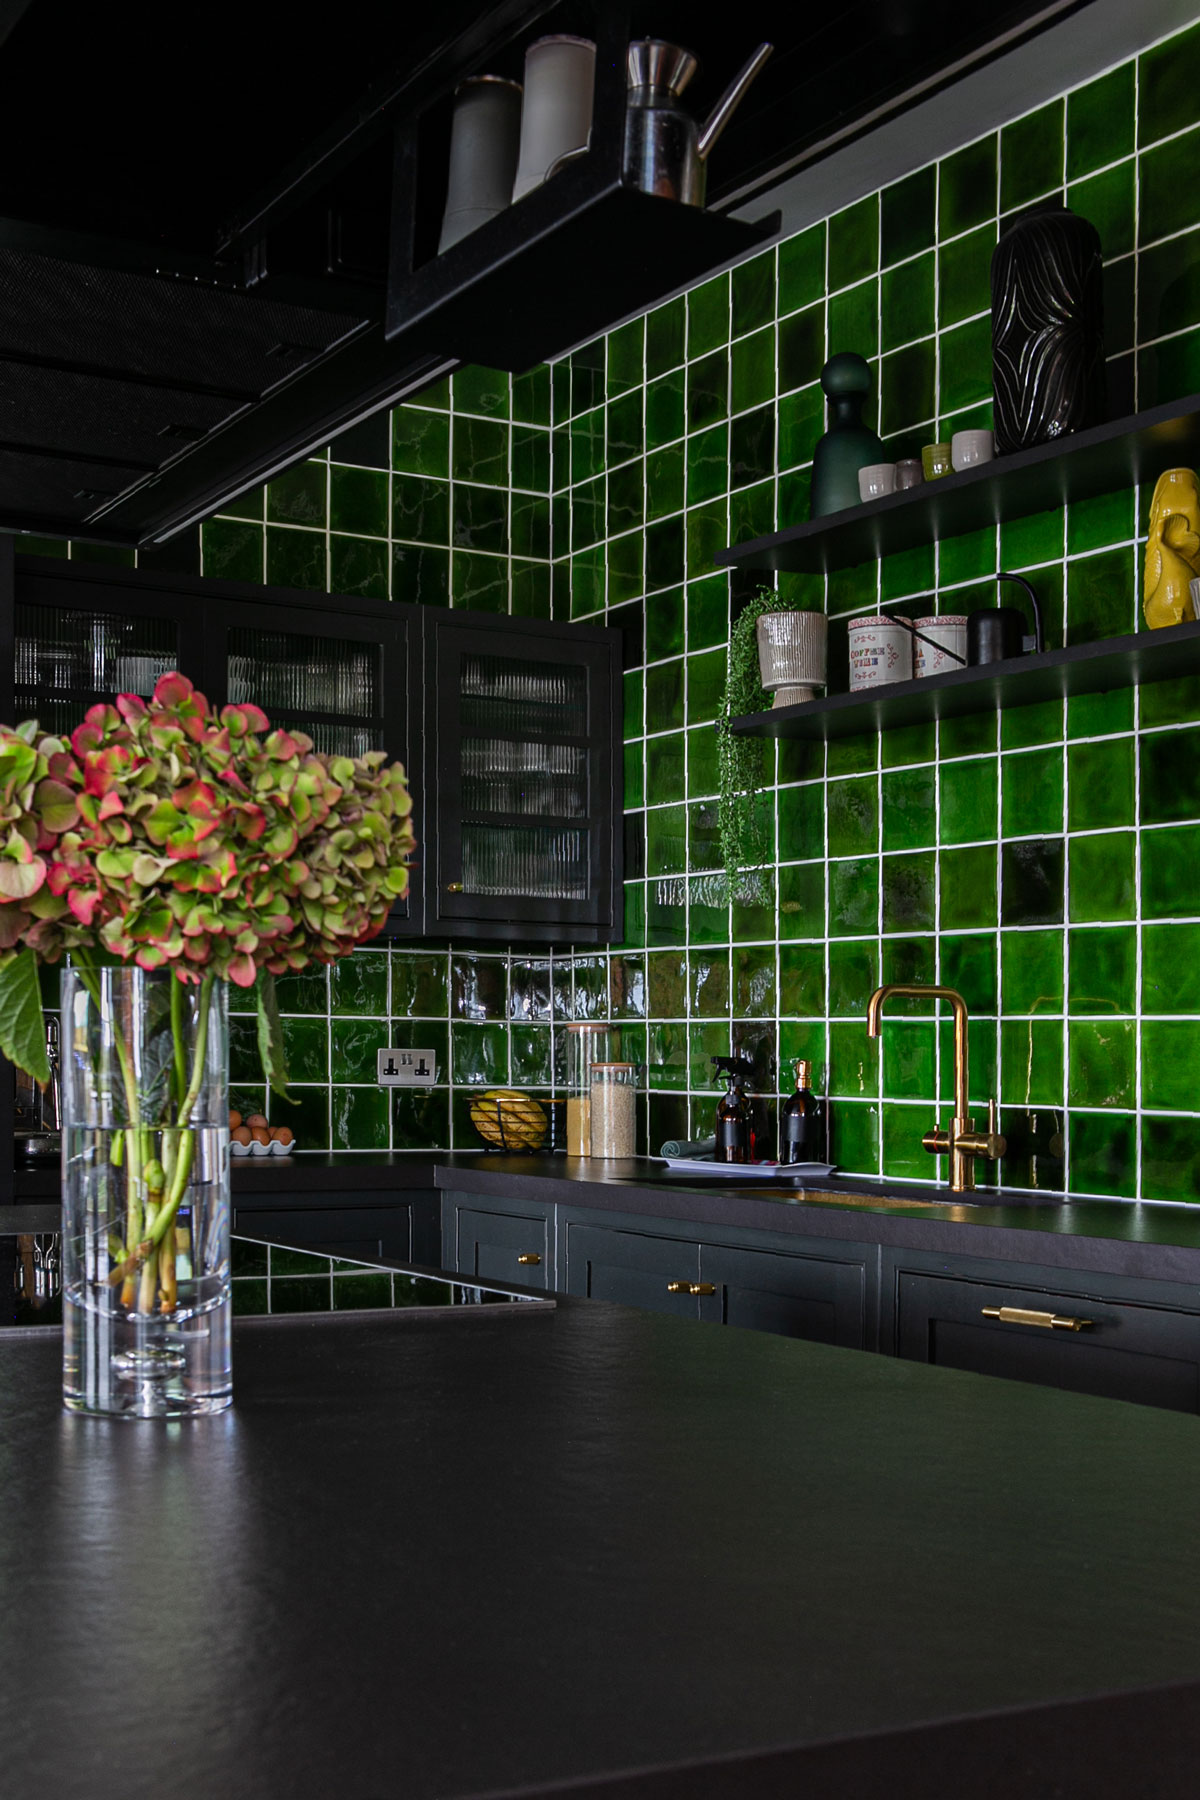 Green tiles make kitchen backsplash